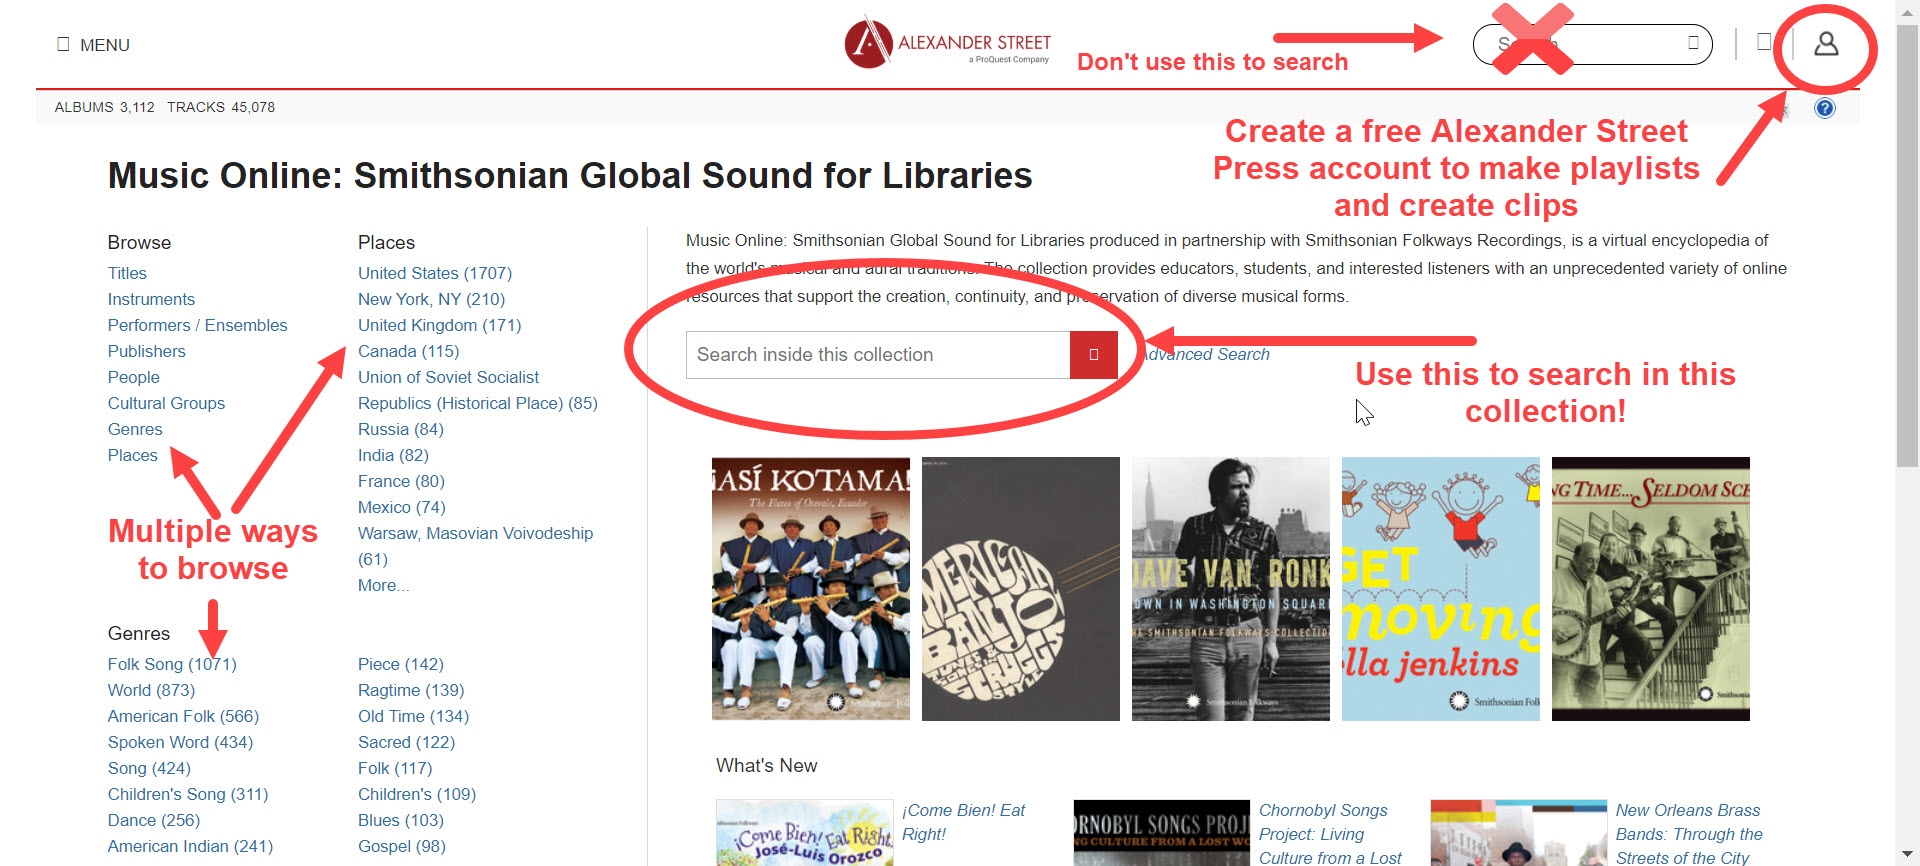 "Image of the Smithsonian Global Sound database, one of the Alexander Street Press suite of audio databases. The options for browsing by genre, place, performer, composer, and more are highlighted, and the search box in the middle of the page for searching the individual collection is circled (the search box at the top of the screen is crossed out because users should avoid using this). Lastly, the ""Sign in"" icon at the top right of the screen is circled."